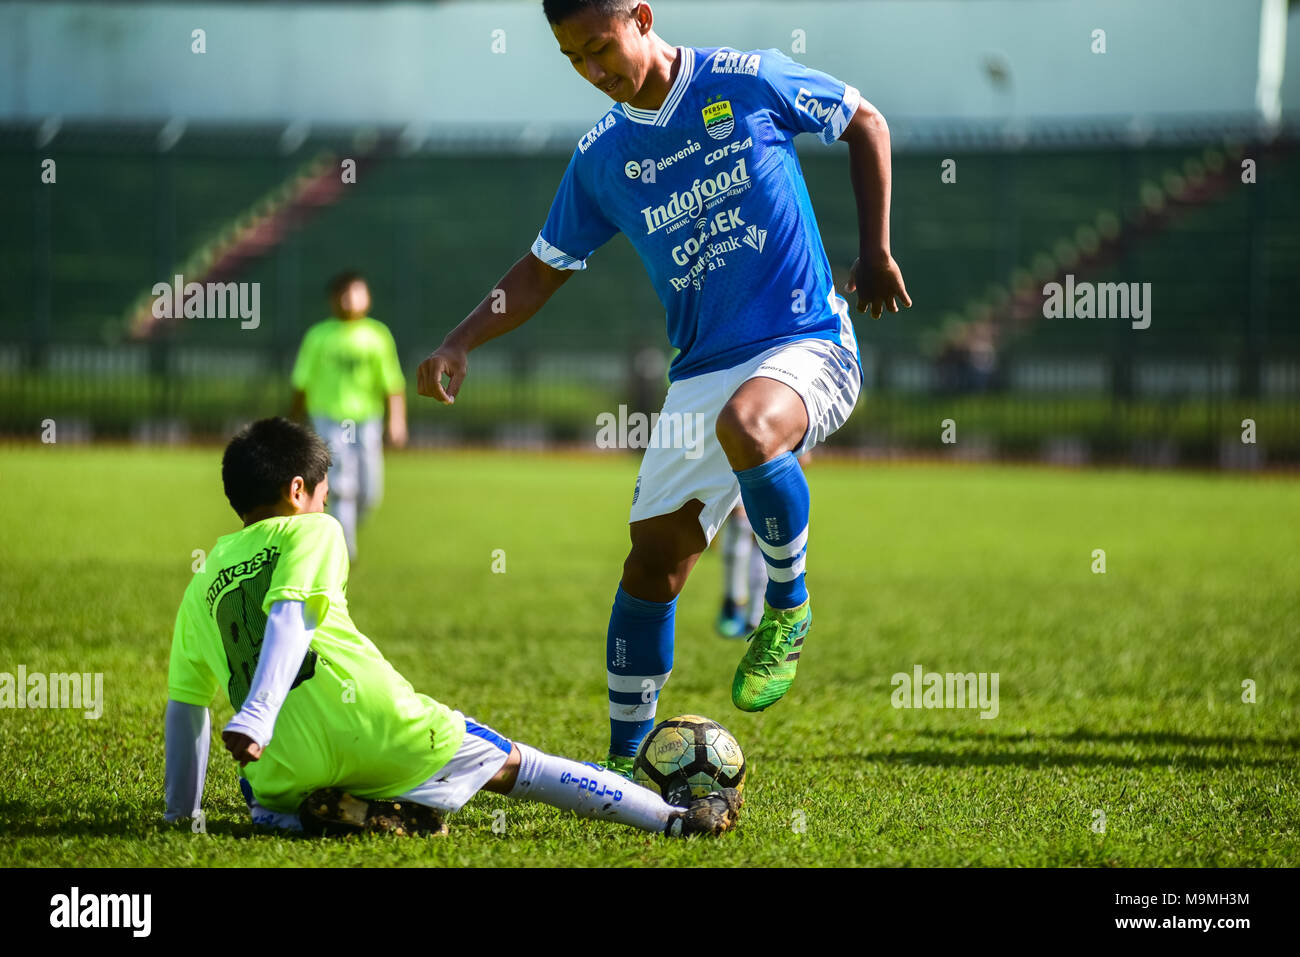 A child launches a sliding tackle on adult player during a friendly game to celebrate the 85th anniversary of Persib FC in Bandung, Indonesia. - Stock Image